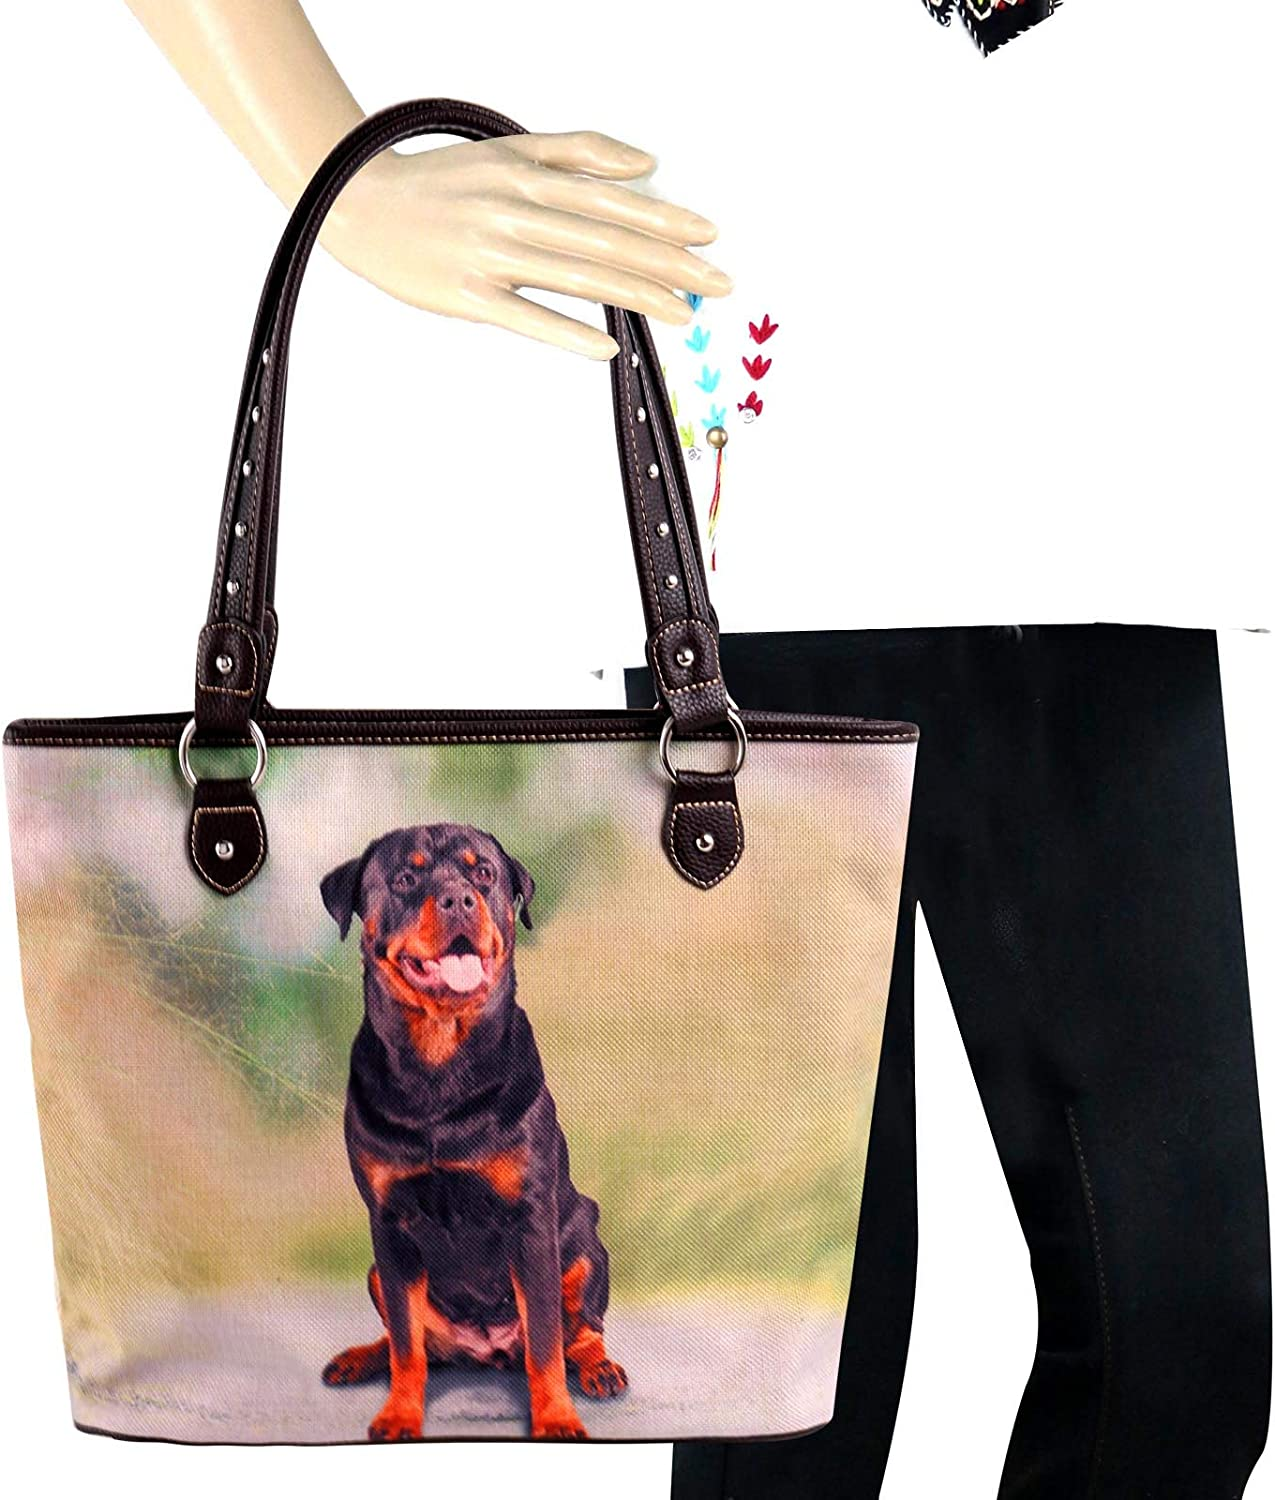 Women/'s Top Handle Hand Bag with Cat /& Tassel Charms Small Bag inside Main Bag